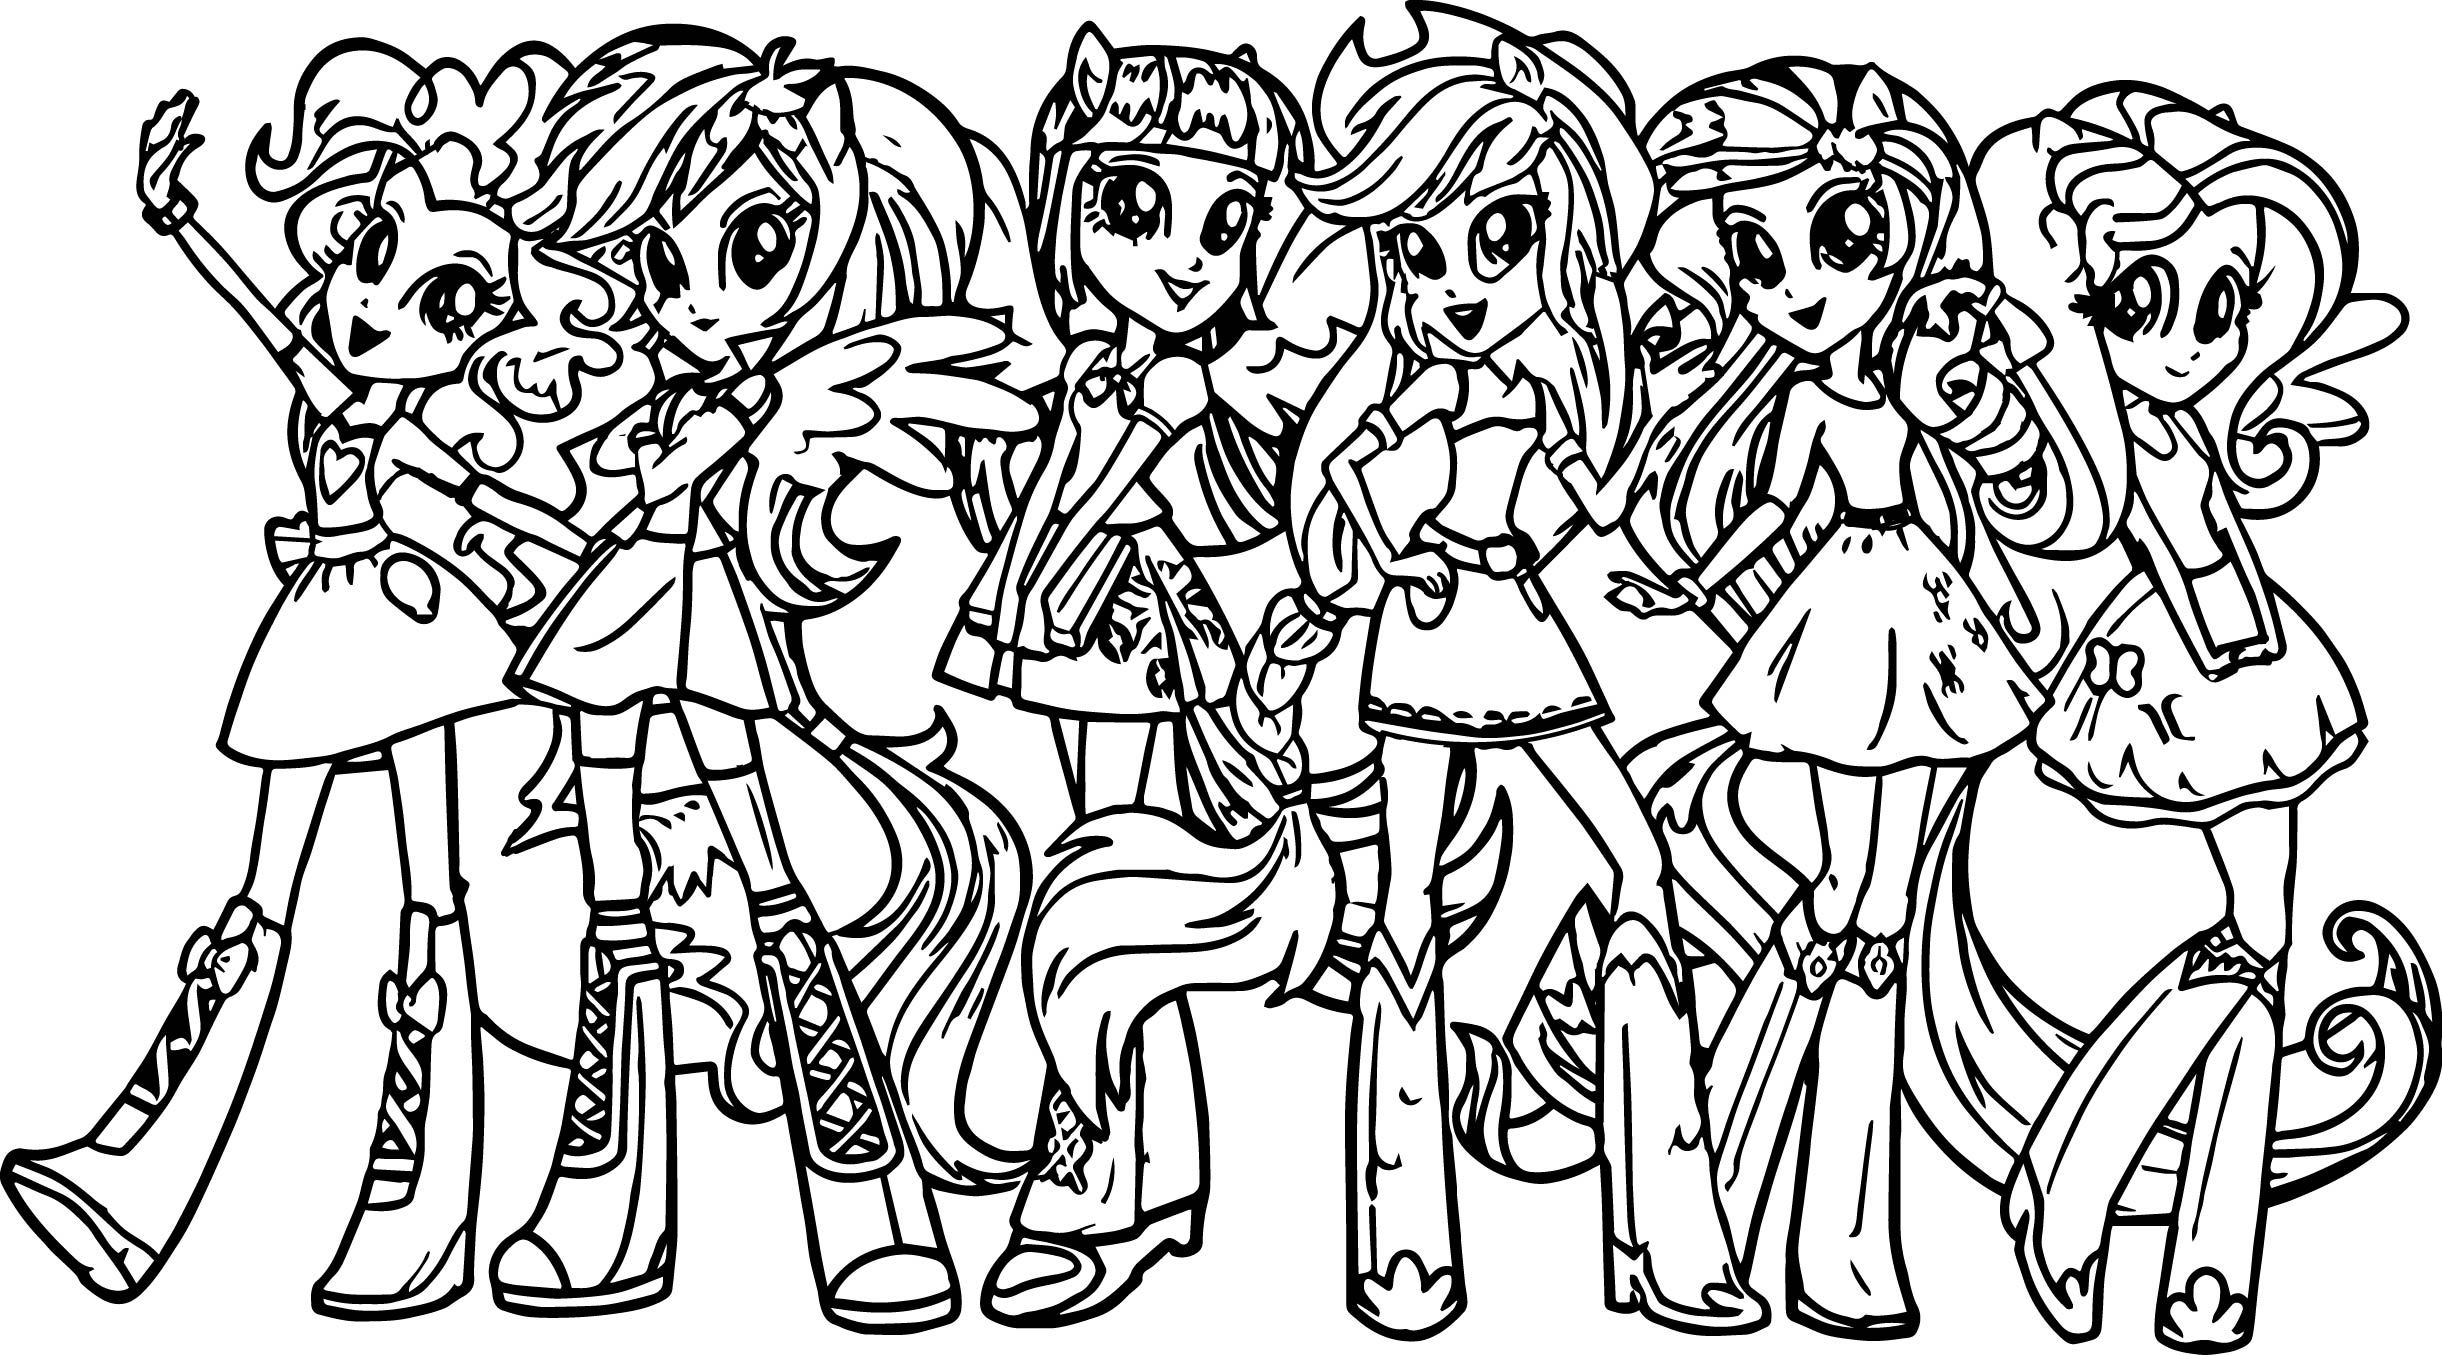 my little pony coloring pages printable free printable my little pony coloring pages for kids printable little my pages pony coloring